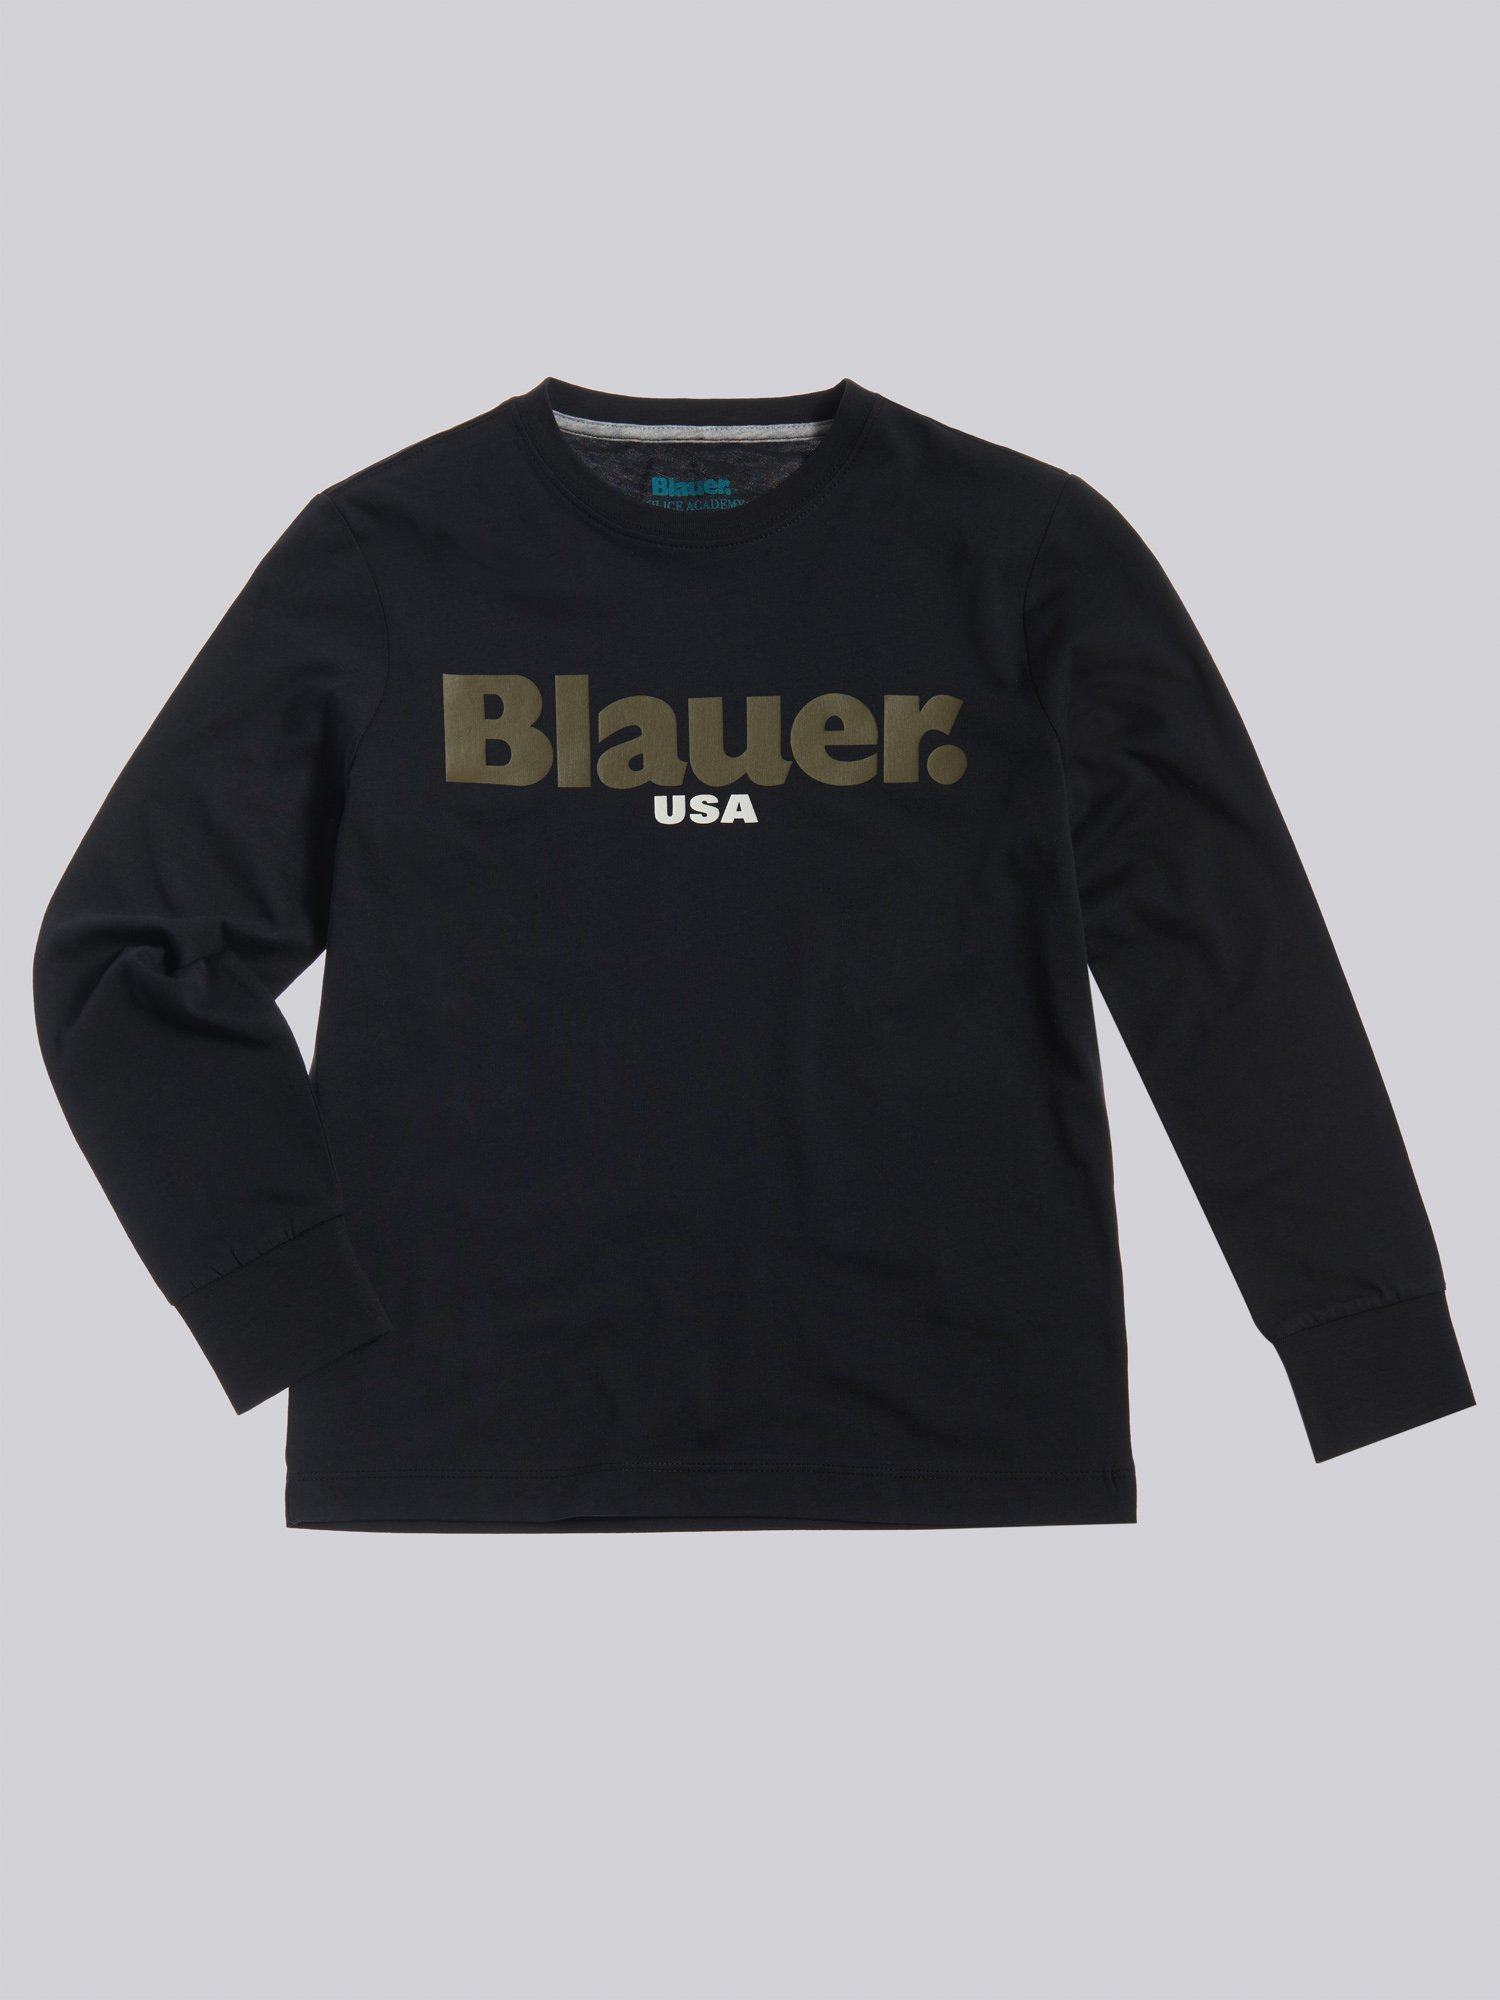 Blauer - BLAUER LONG SLEEVE T-SHIRT - Black - Blauer